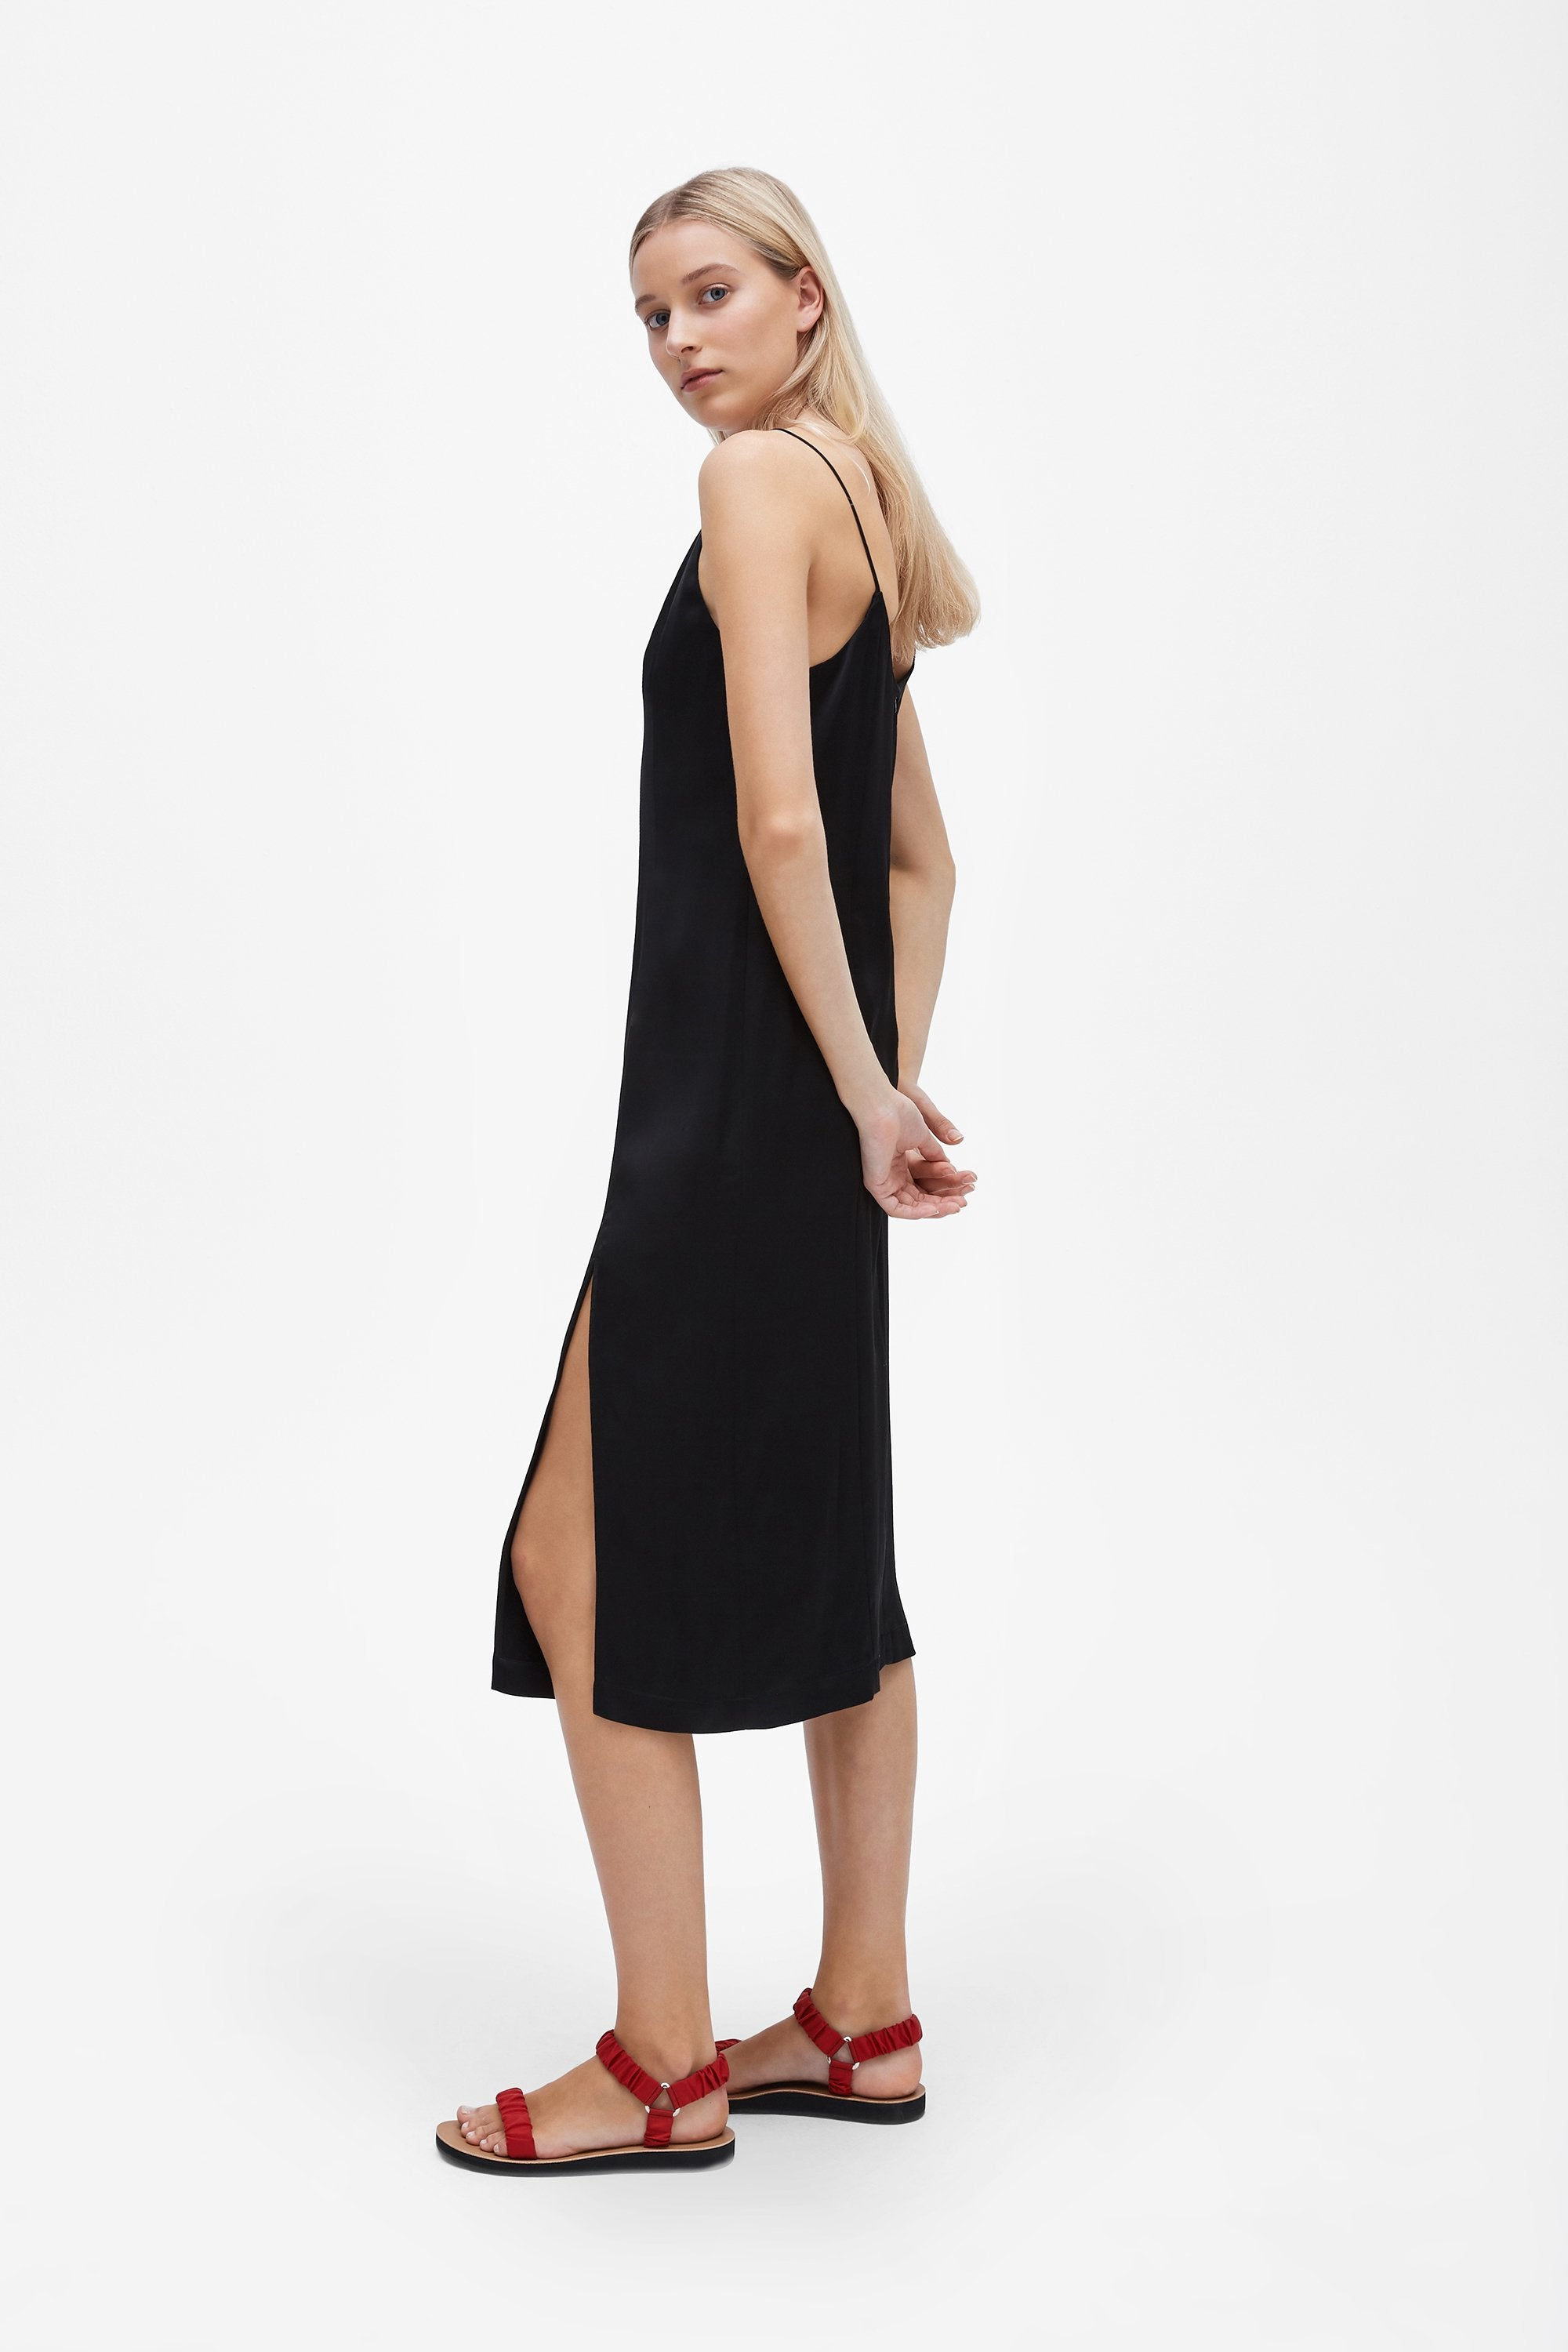 Split slip dress - Sandwashed silk satin - Black - Resortwear dress - Her Line